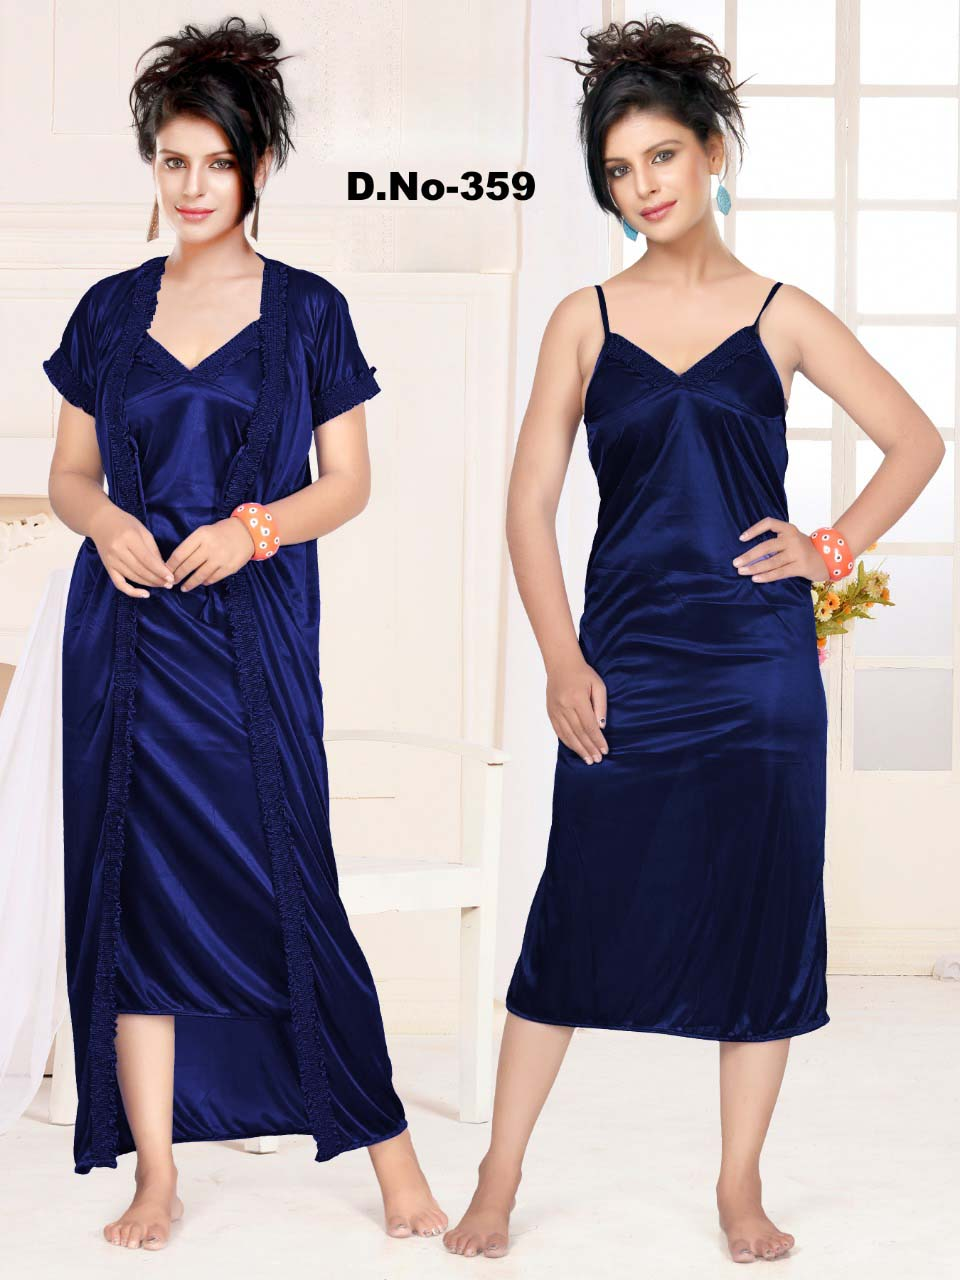 WMN SATIN TWO PIECE NIGHTY-NAVY-KC APL 359